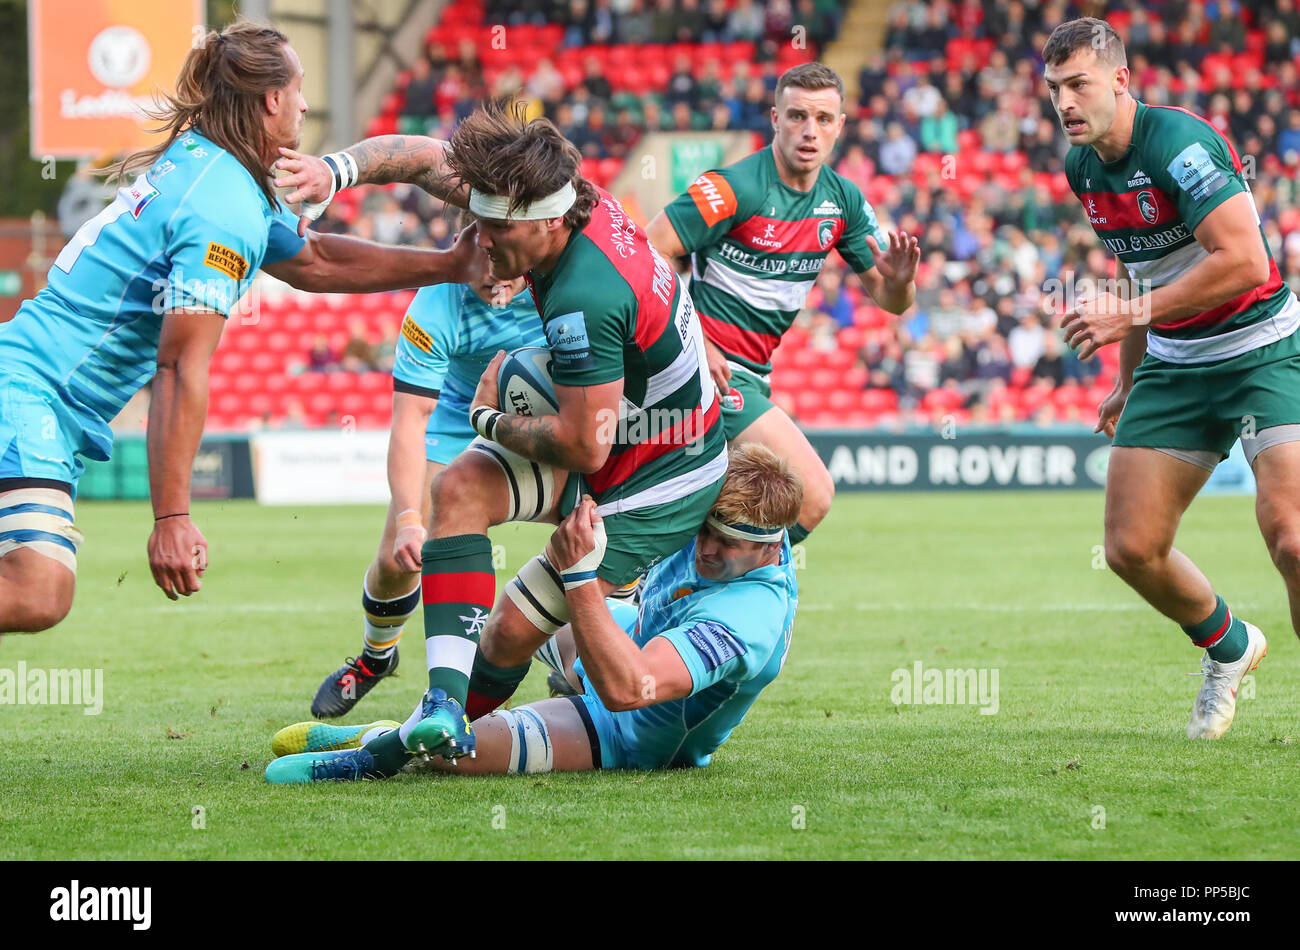 Leicester, UK. 23rd September, 2018. Premiership Rugby Union.     Leicester Tigers v Worcester Warriors  rfc.           Guy Thompson in action during the Gallagher Premiership game played at Welford Road Stadium, Leicester, England. Credit: Phil Hutchinson/Alamy Live News - Stock Image